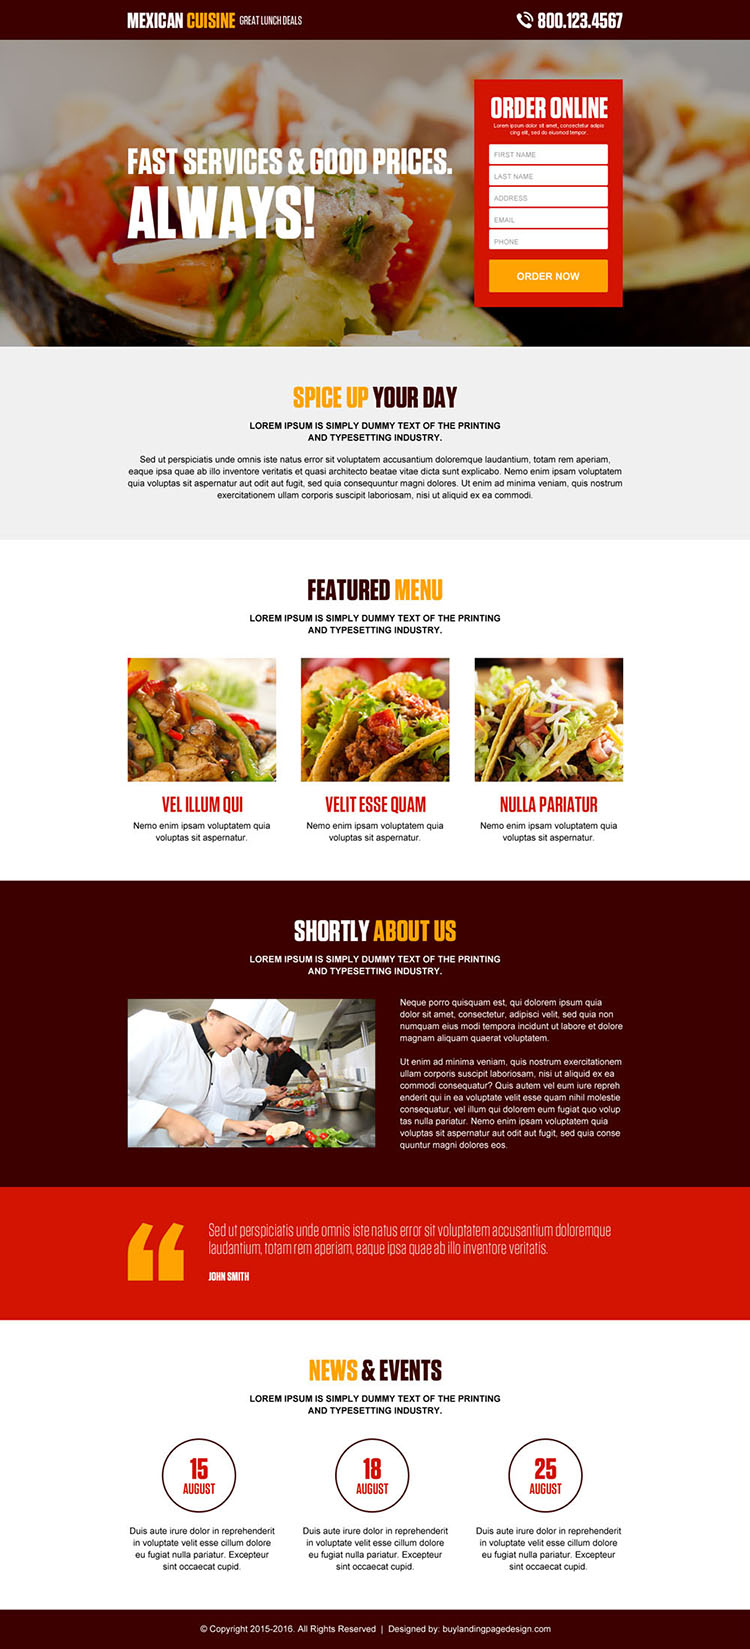 appealing online hotel and restaurant lead generating landing page design